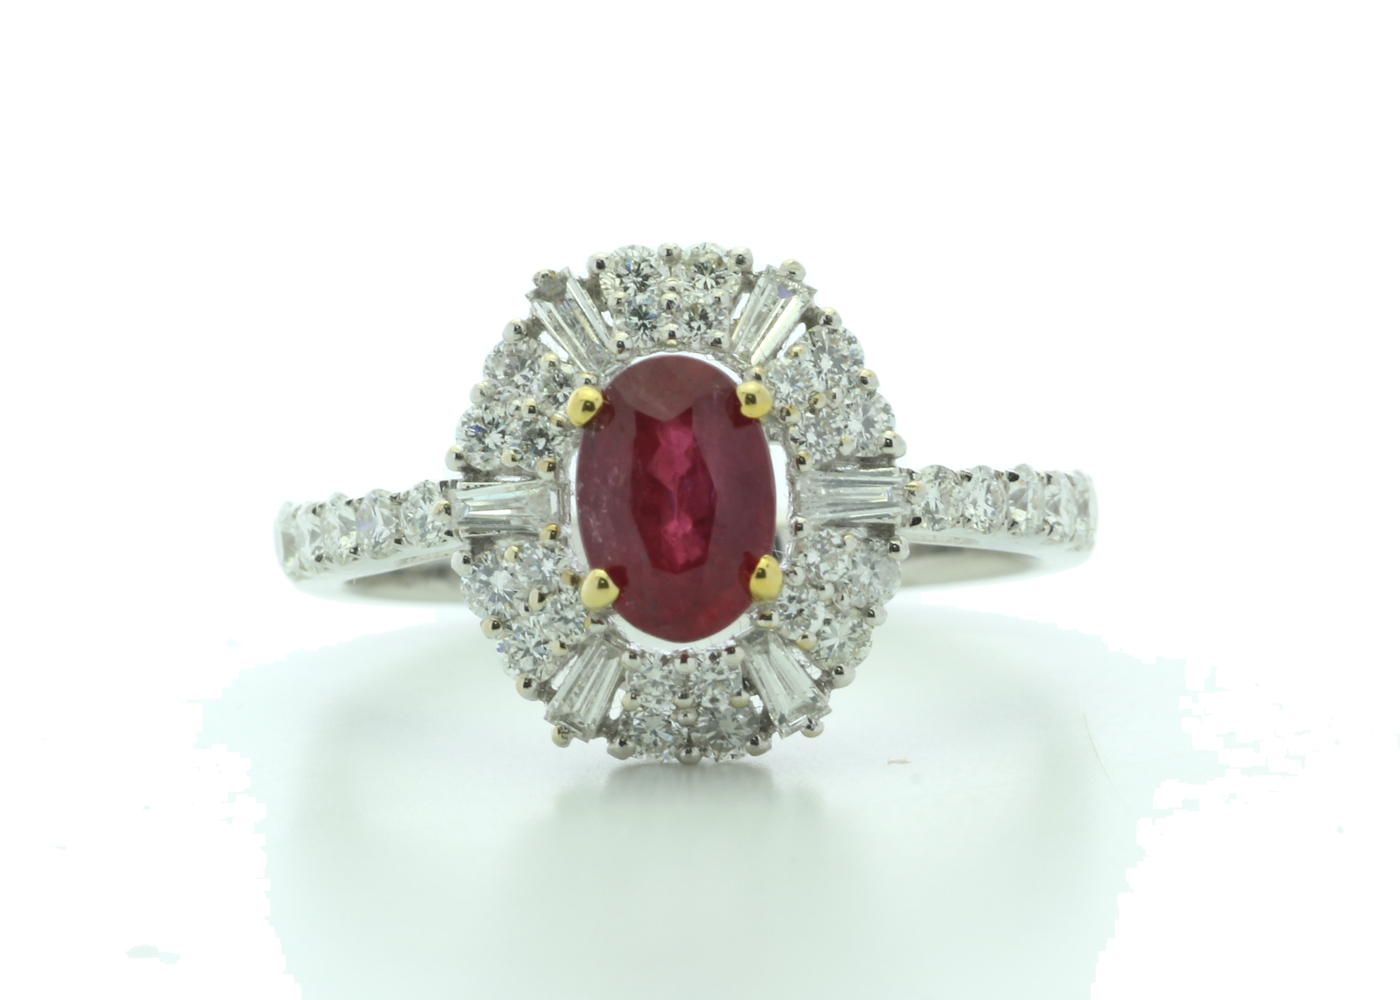 18k White Gold Cluster Diamond And Ruby Ring (R0.86) 0.80 Carats